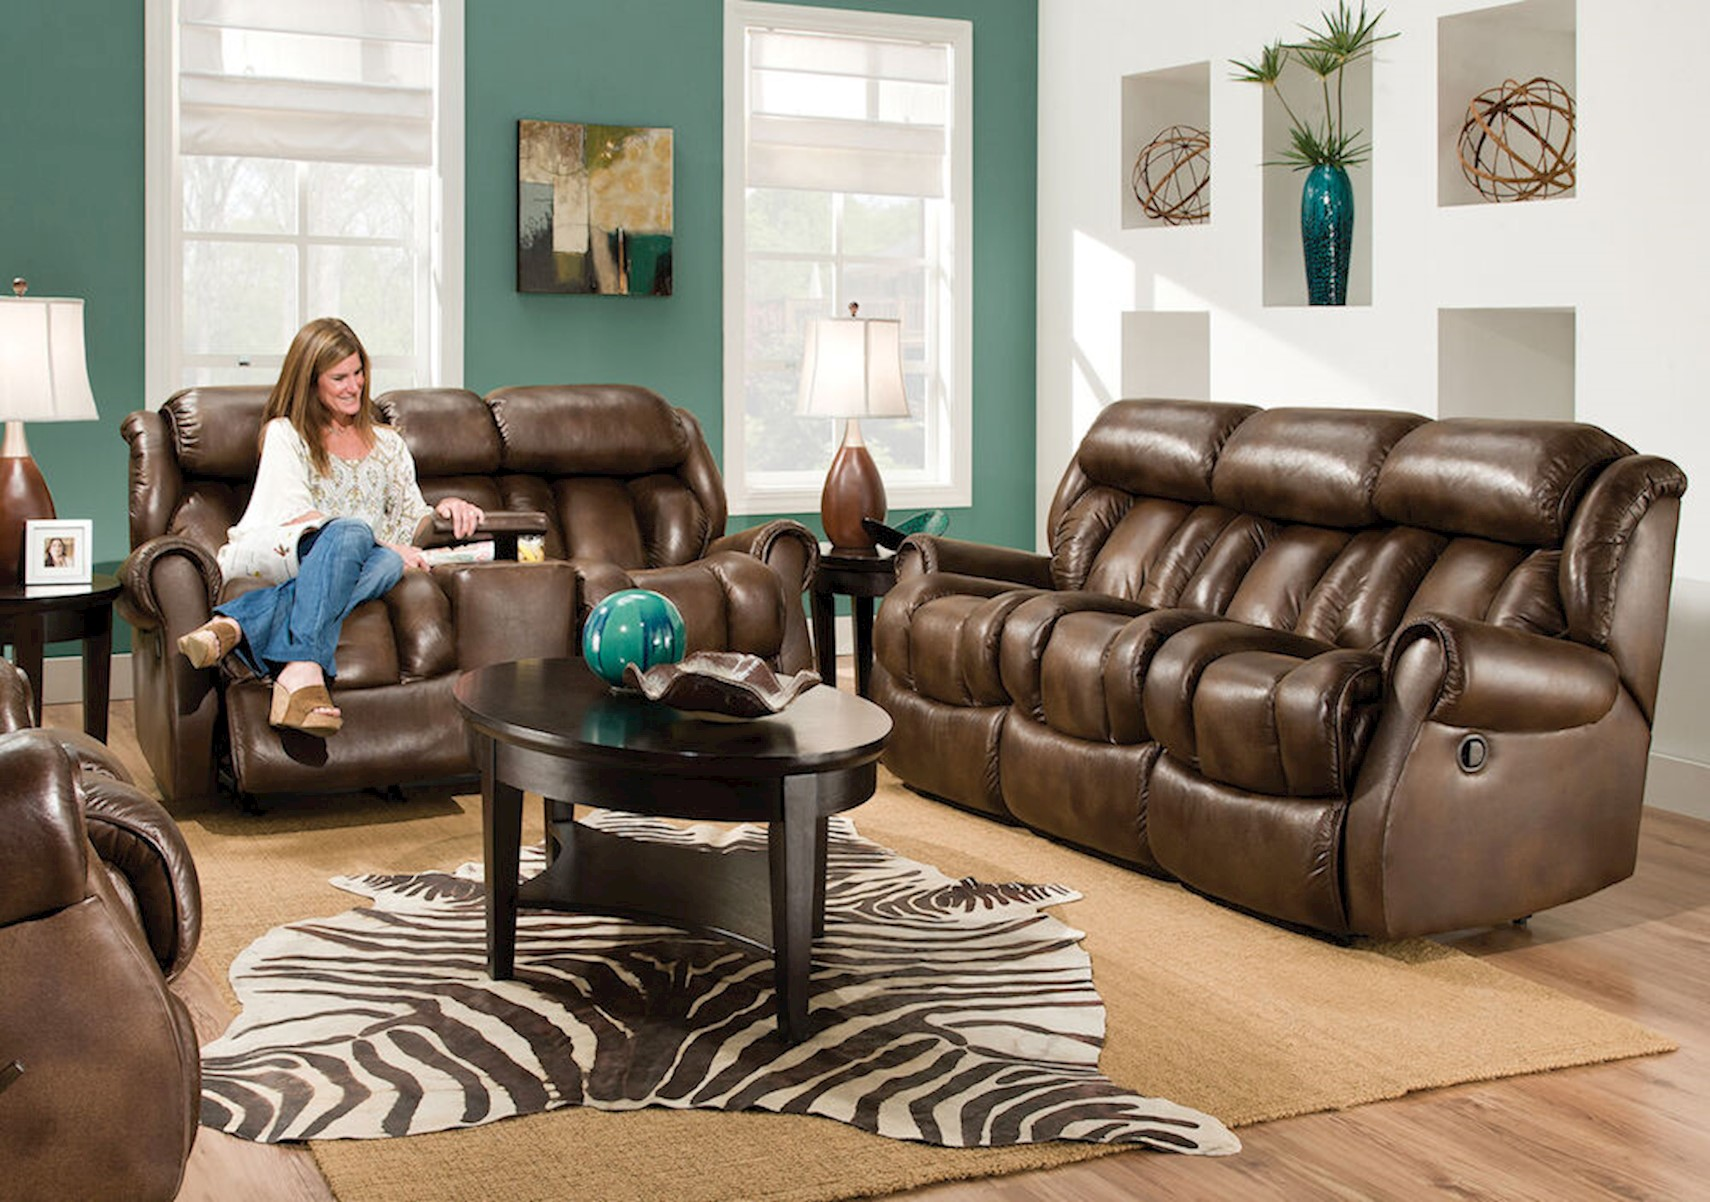 reclining living room furniture sets. Cody 2-Pc Reclining Living Room Set Reclining Living Room Furniture Sets